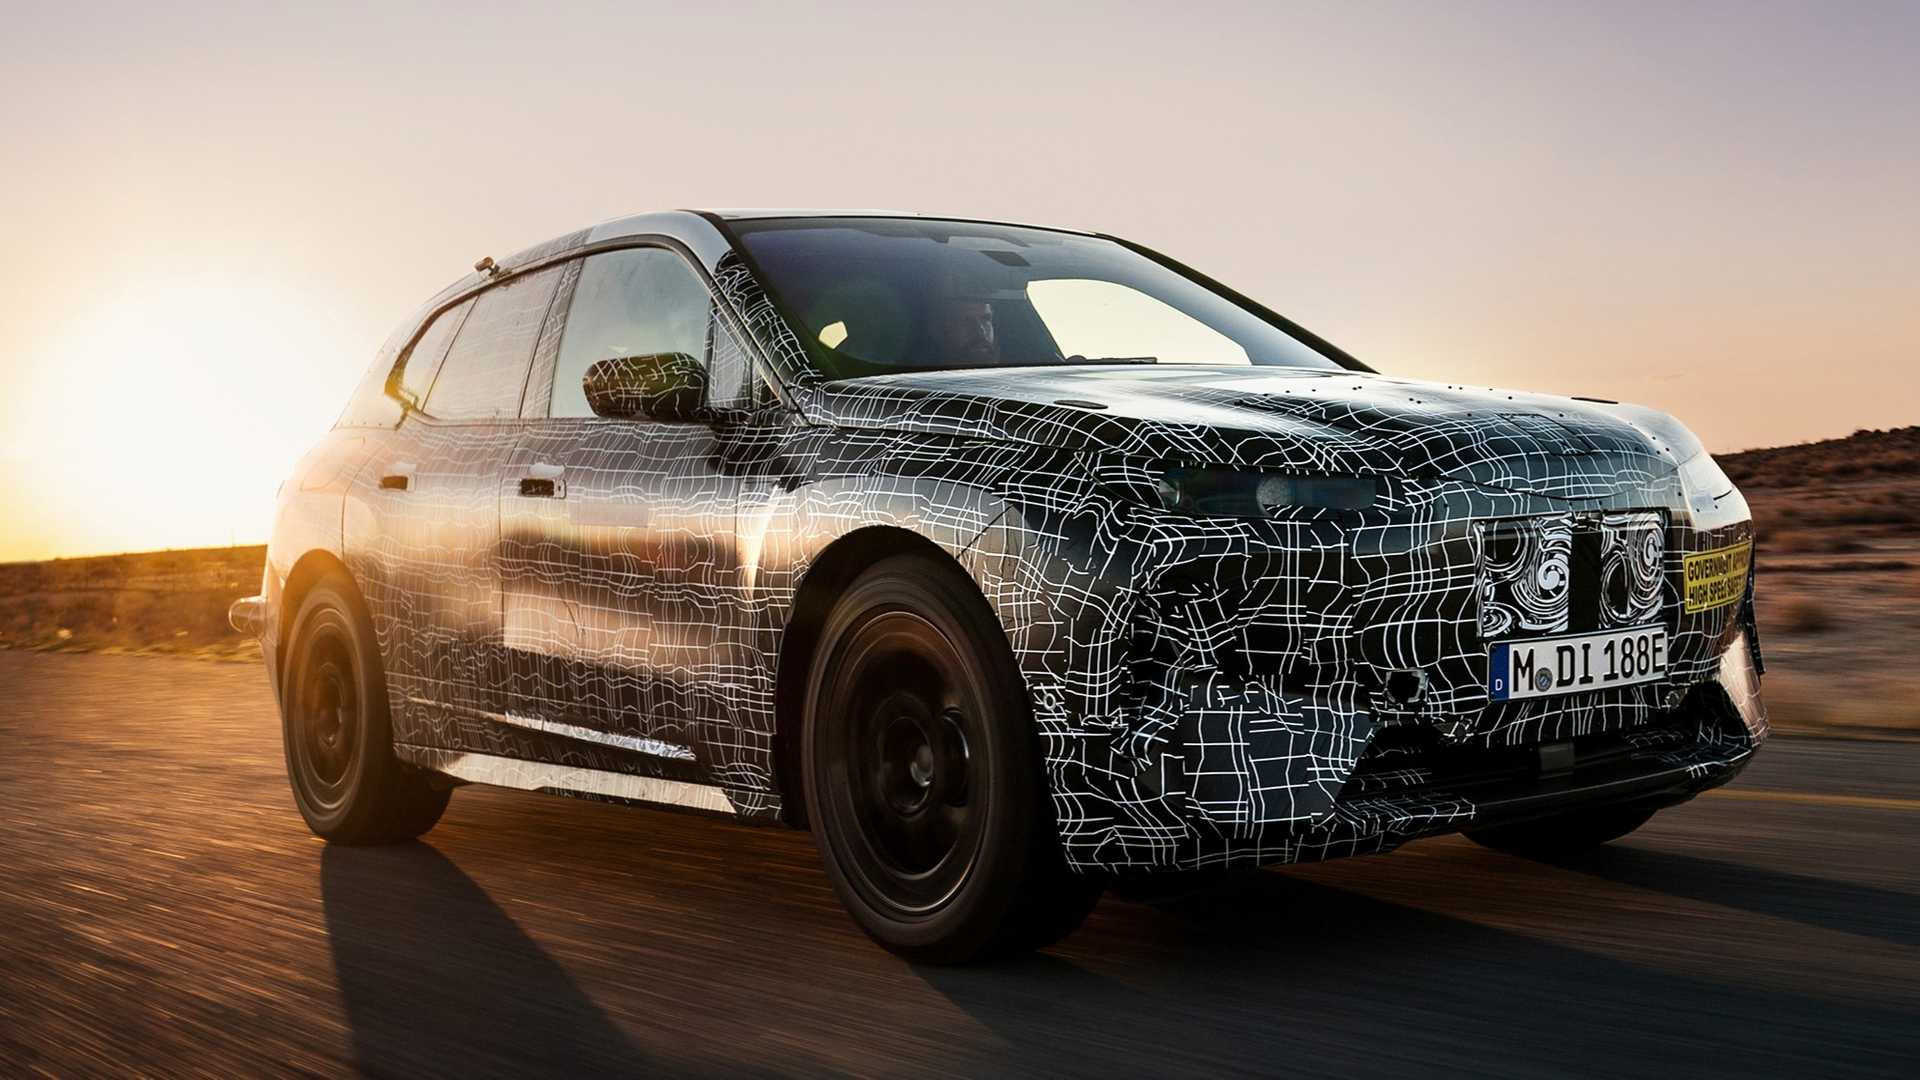 The BMW iNext Concept unveiled two years ago (see video) will ultimately enter production as the BMW iX, the manufacturer reports along with some other details.